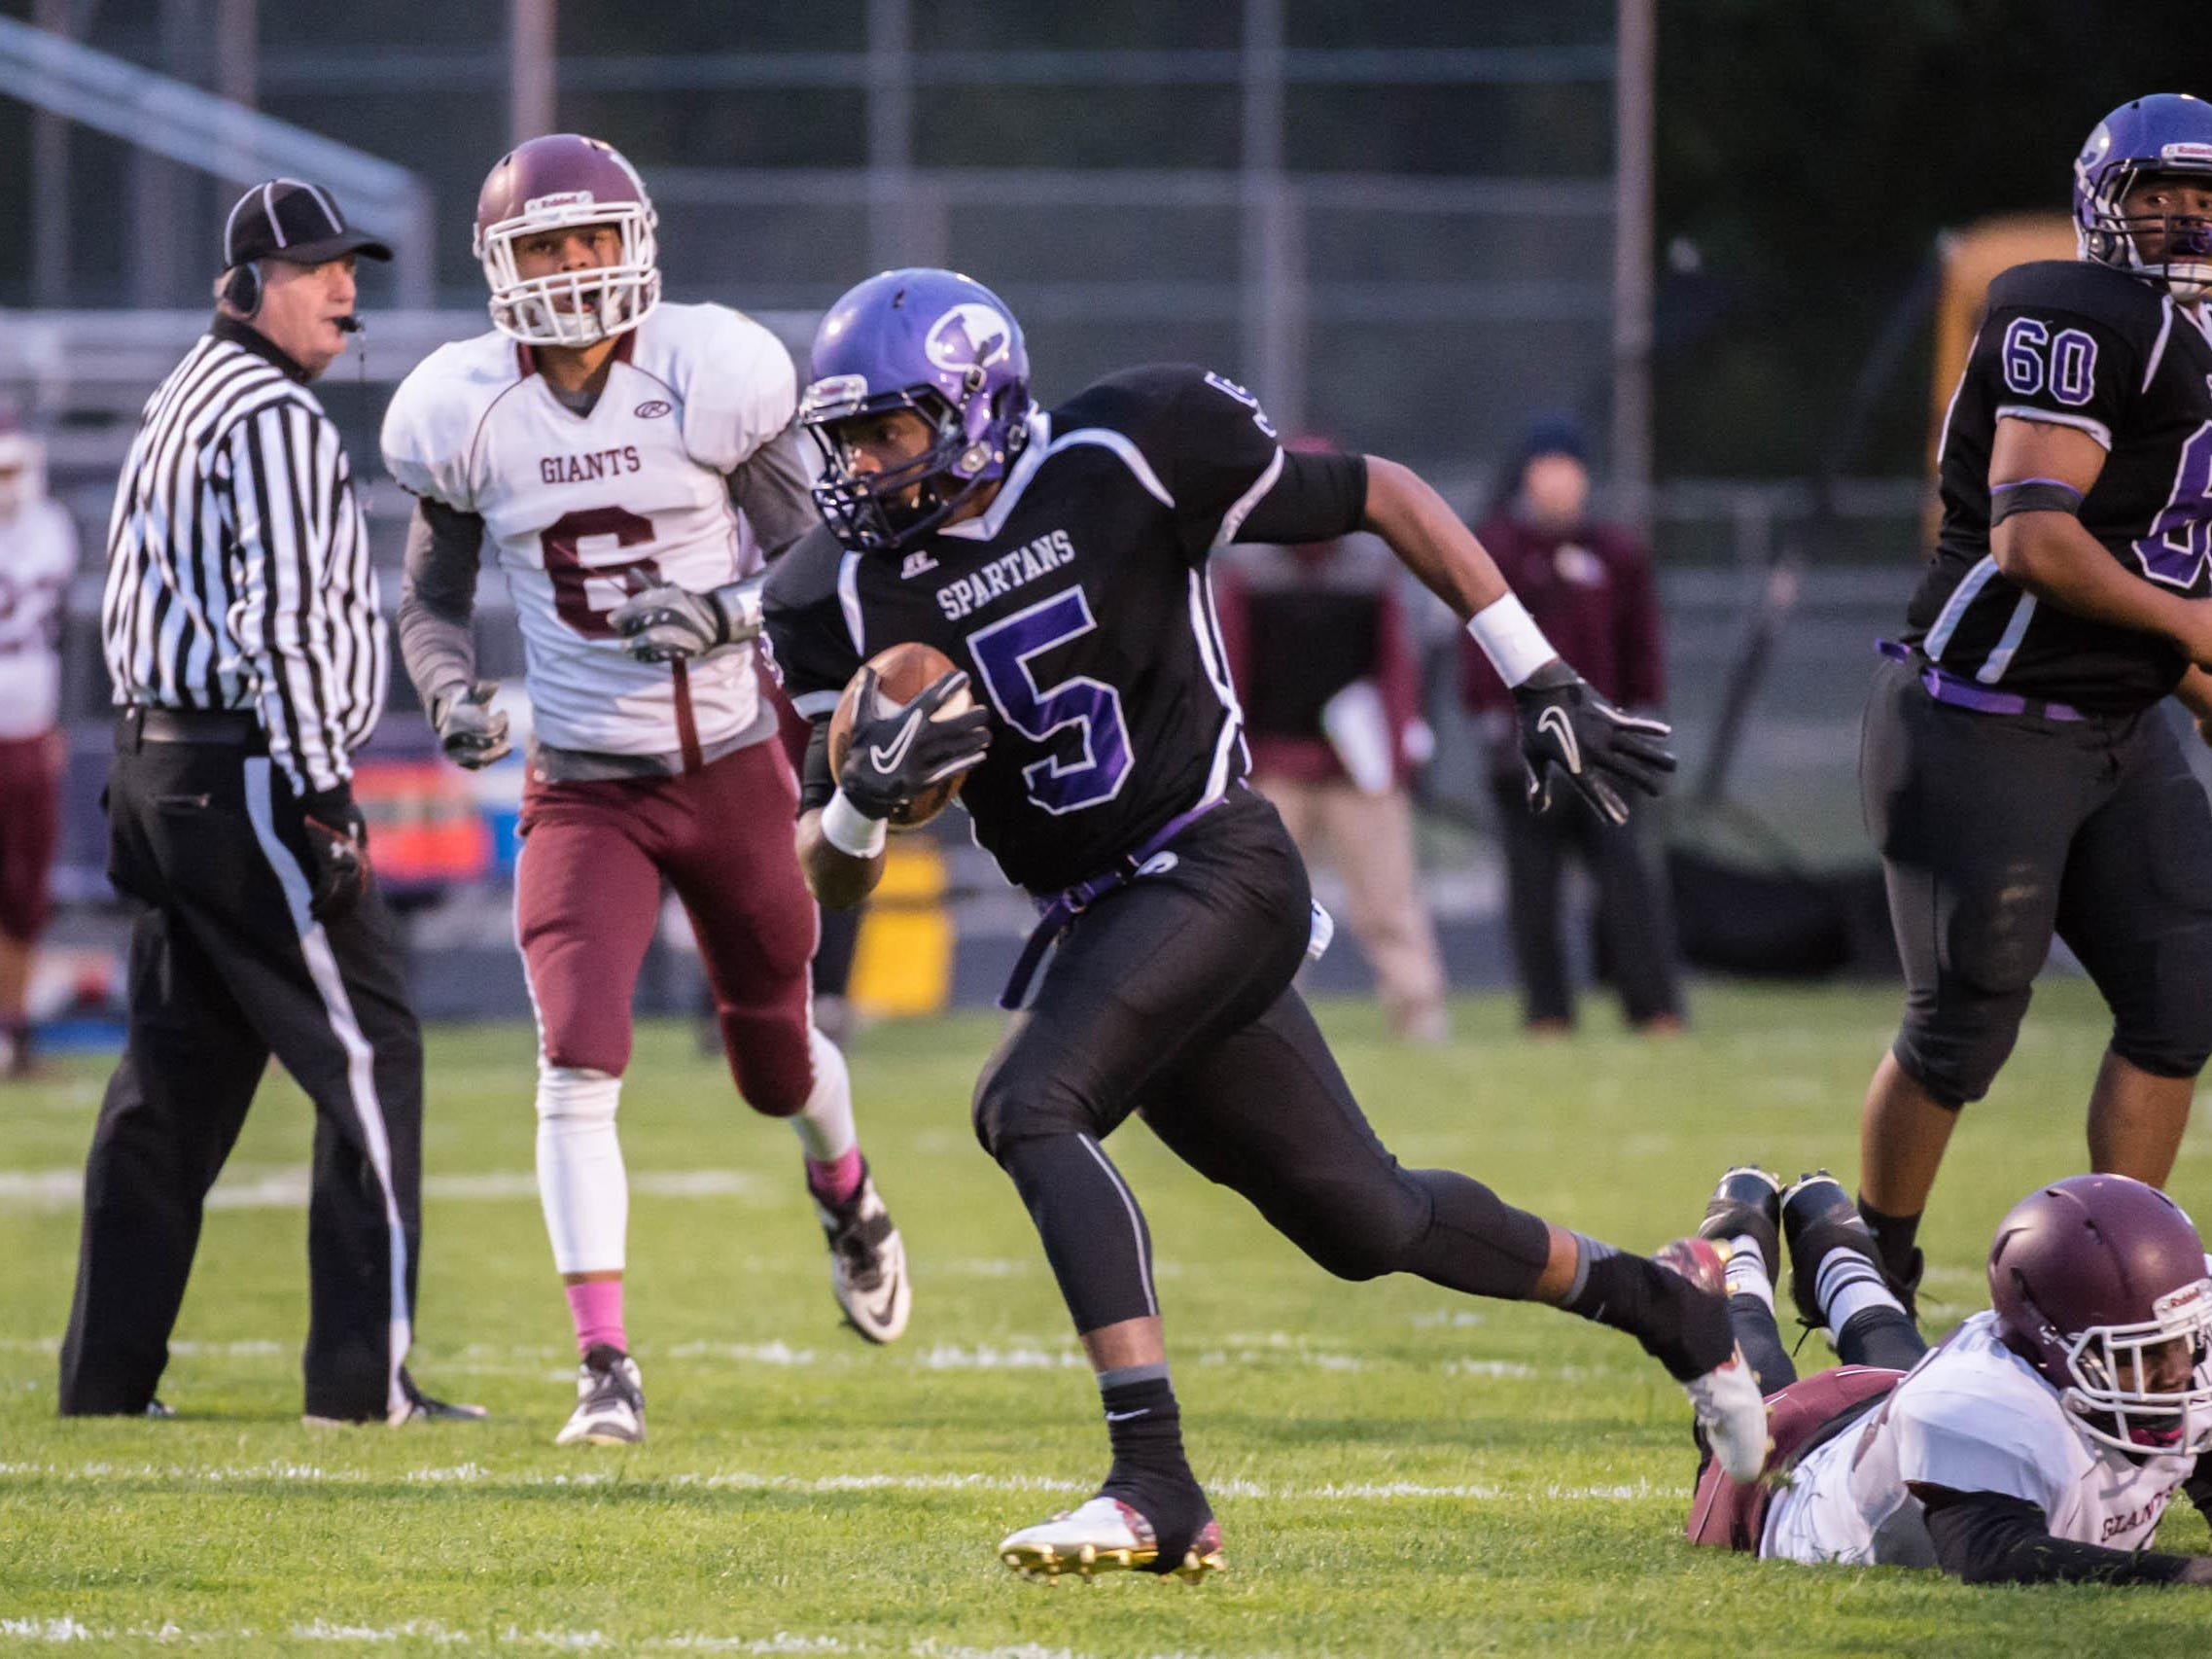 Lakeview's Dre'On Kemp advances the ball against Kalamazoo Central Friday evening.